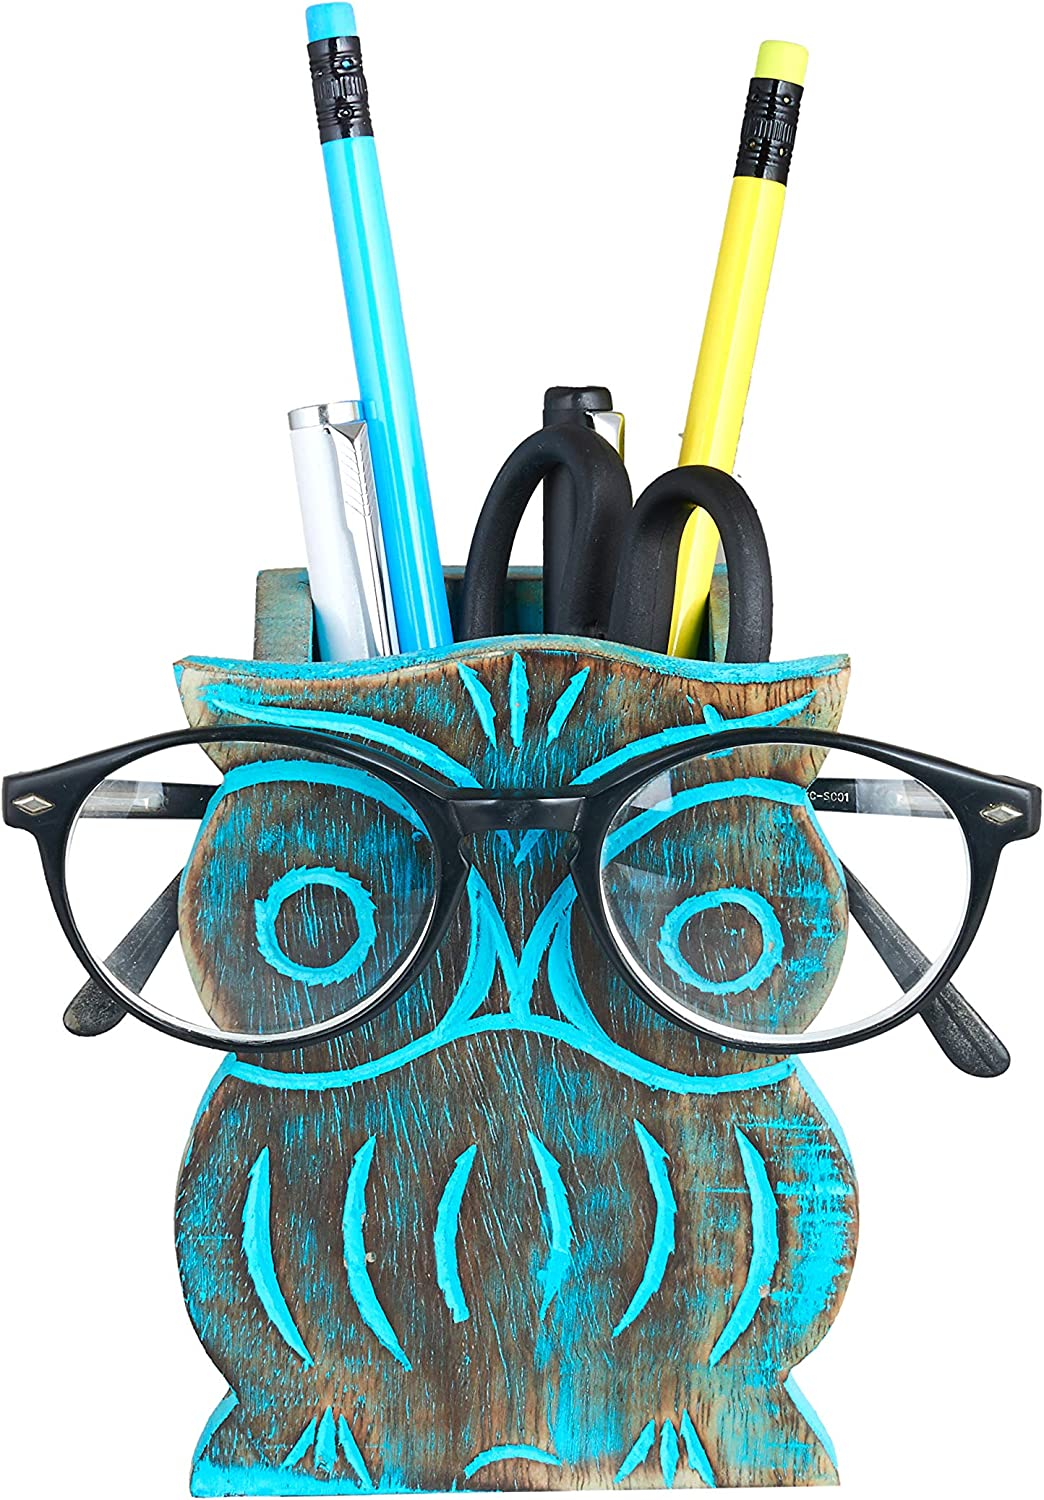 Owl Spectacle Holder | Pen Pencil Holder Stand for Desk | Pen Pencil Case Stand Up | Standing Pencil Case | Colored Pencil Holder Stand | Eyeglass Holder Stand | Home Office Decorative Accessories